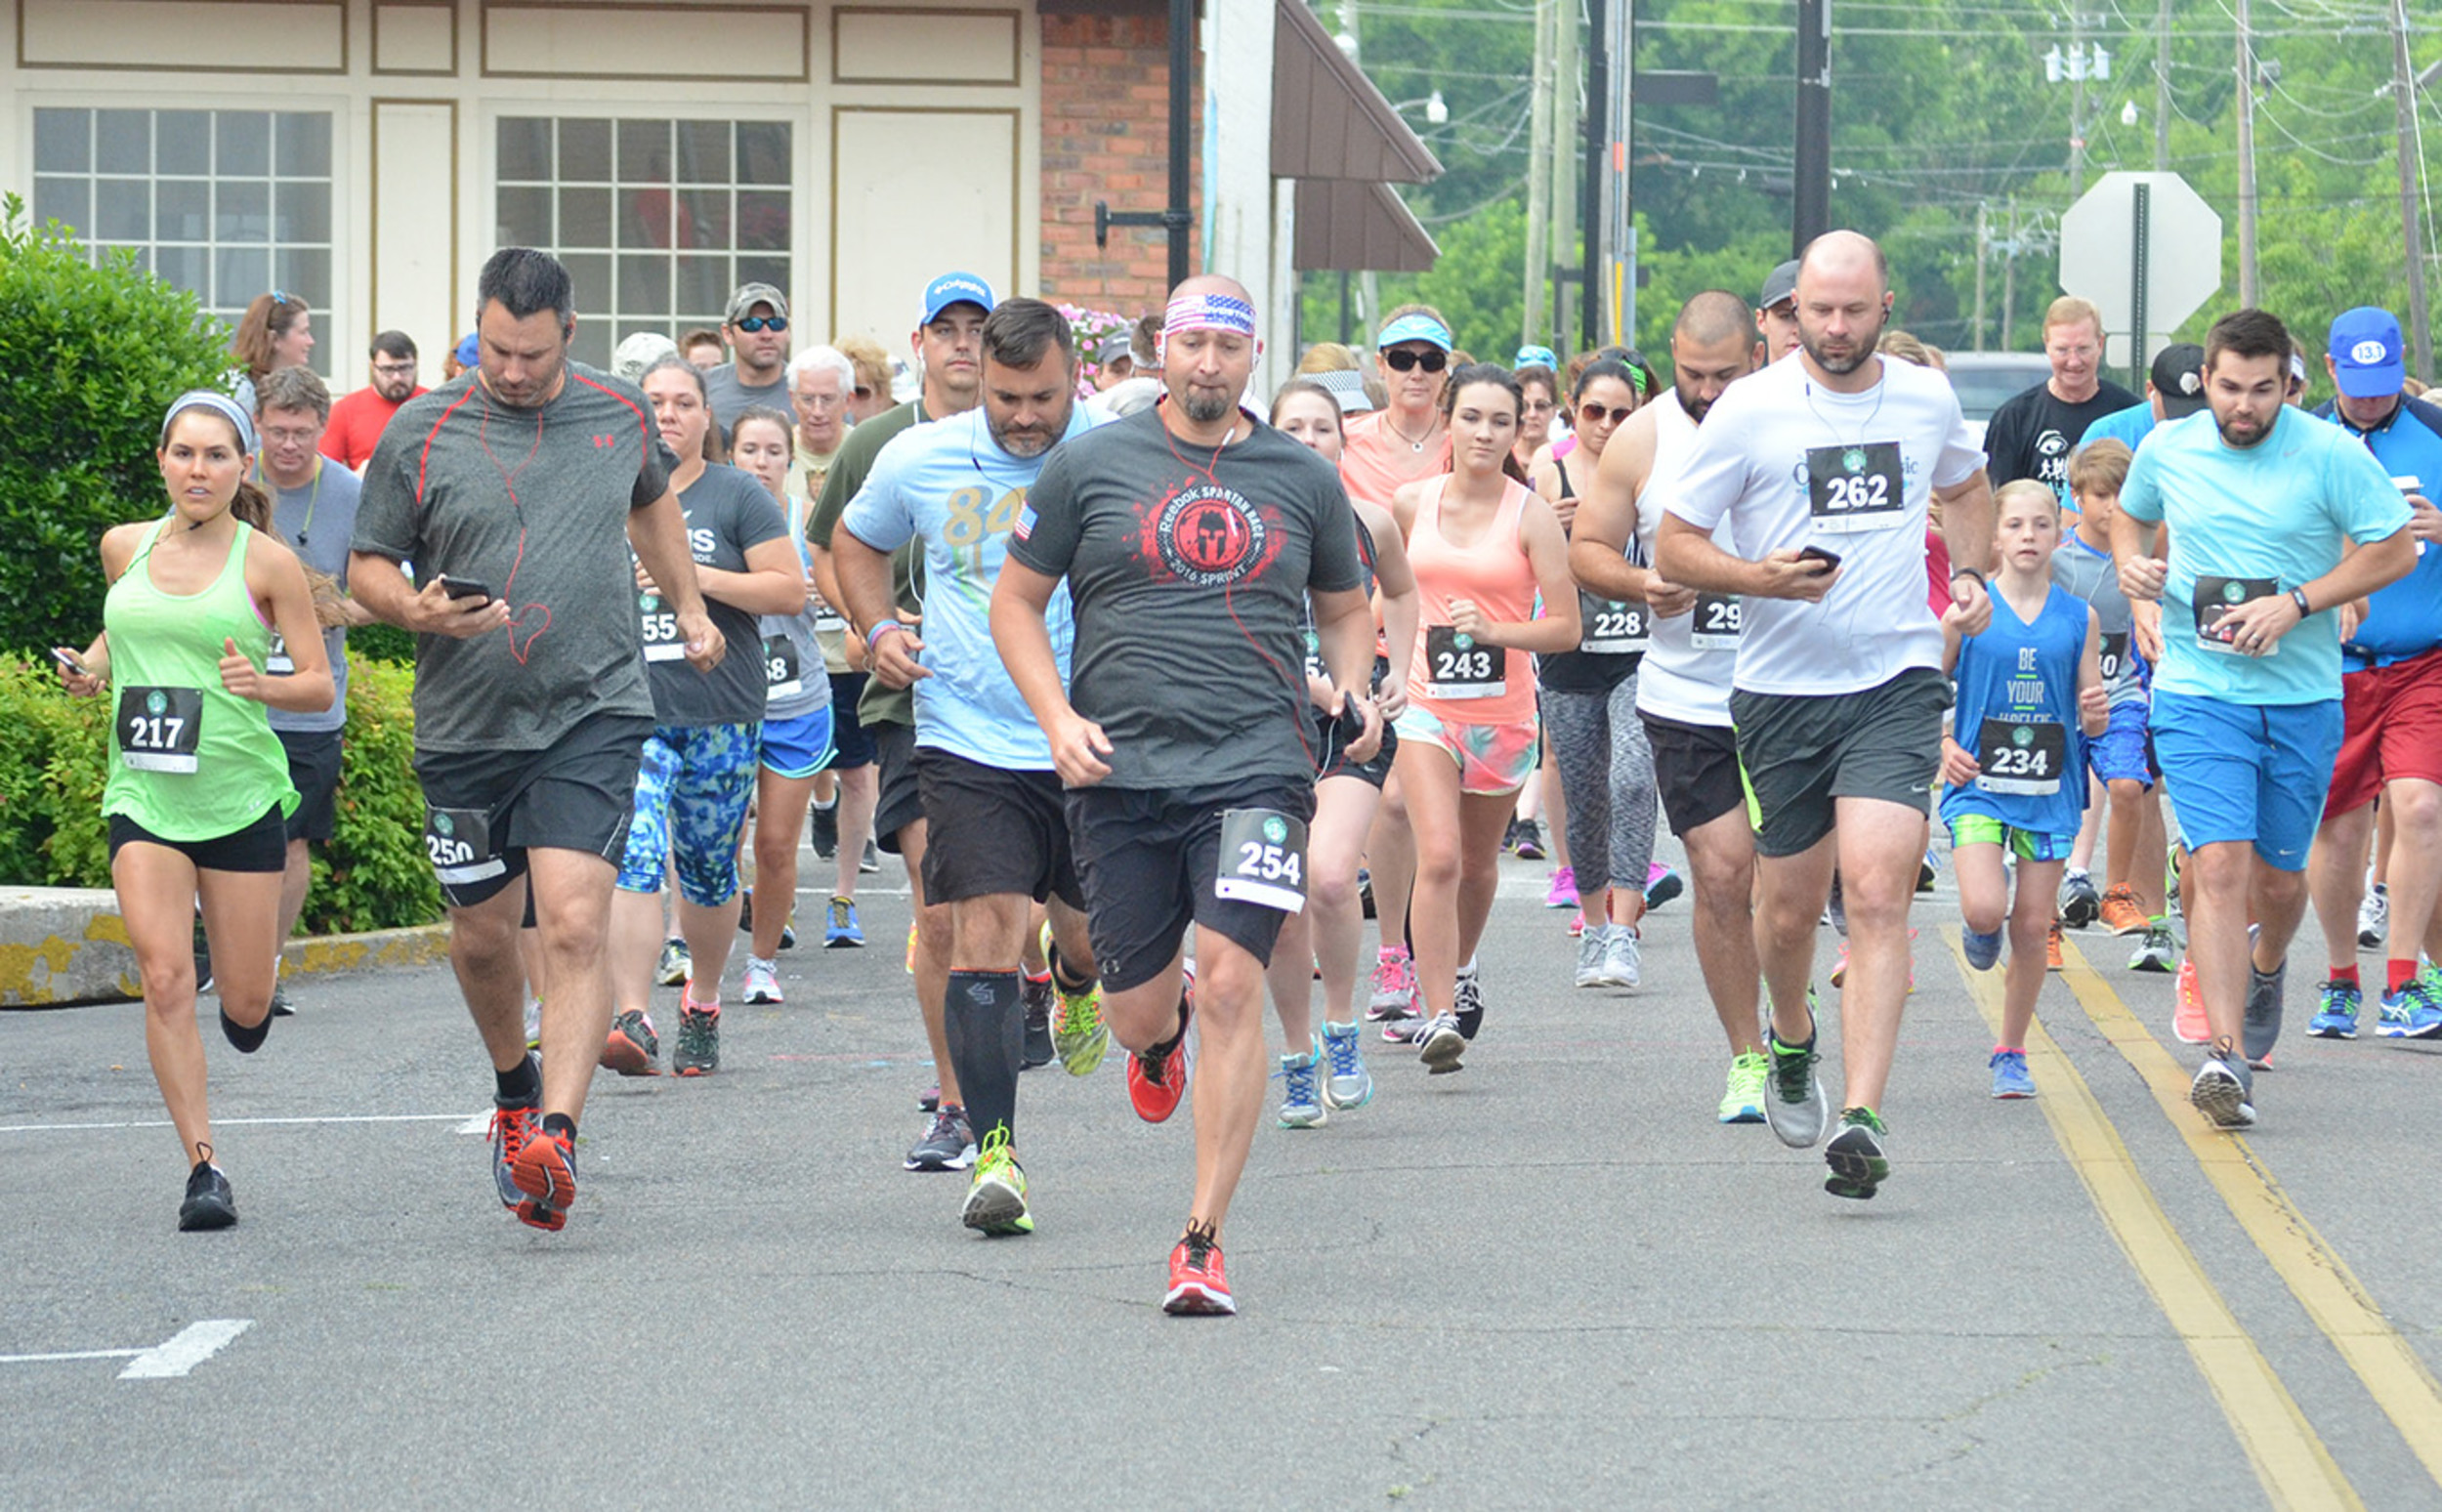 A large field of runners competed in the inaugural Tallulah 5K run in downtown Jasper earlier this year. Organizers of the inaugural Vike-4-Life 5K and fun run set for Thursday afternoon are hoping at least 125 runners will compete. The 5K run is set to begin at 6 p.m.  Daily Mountain Eagle - Johnathan Bentley